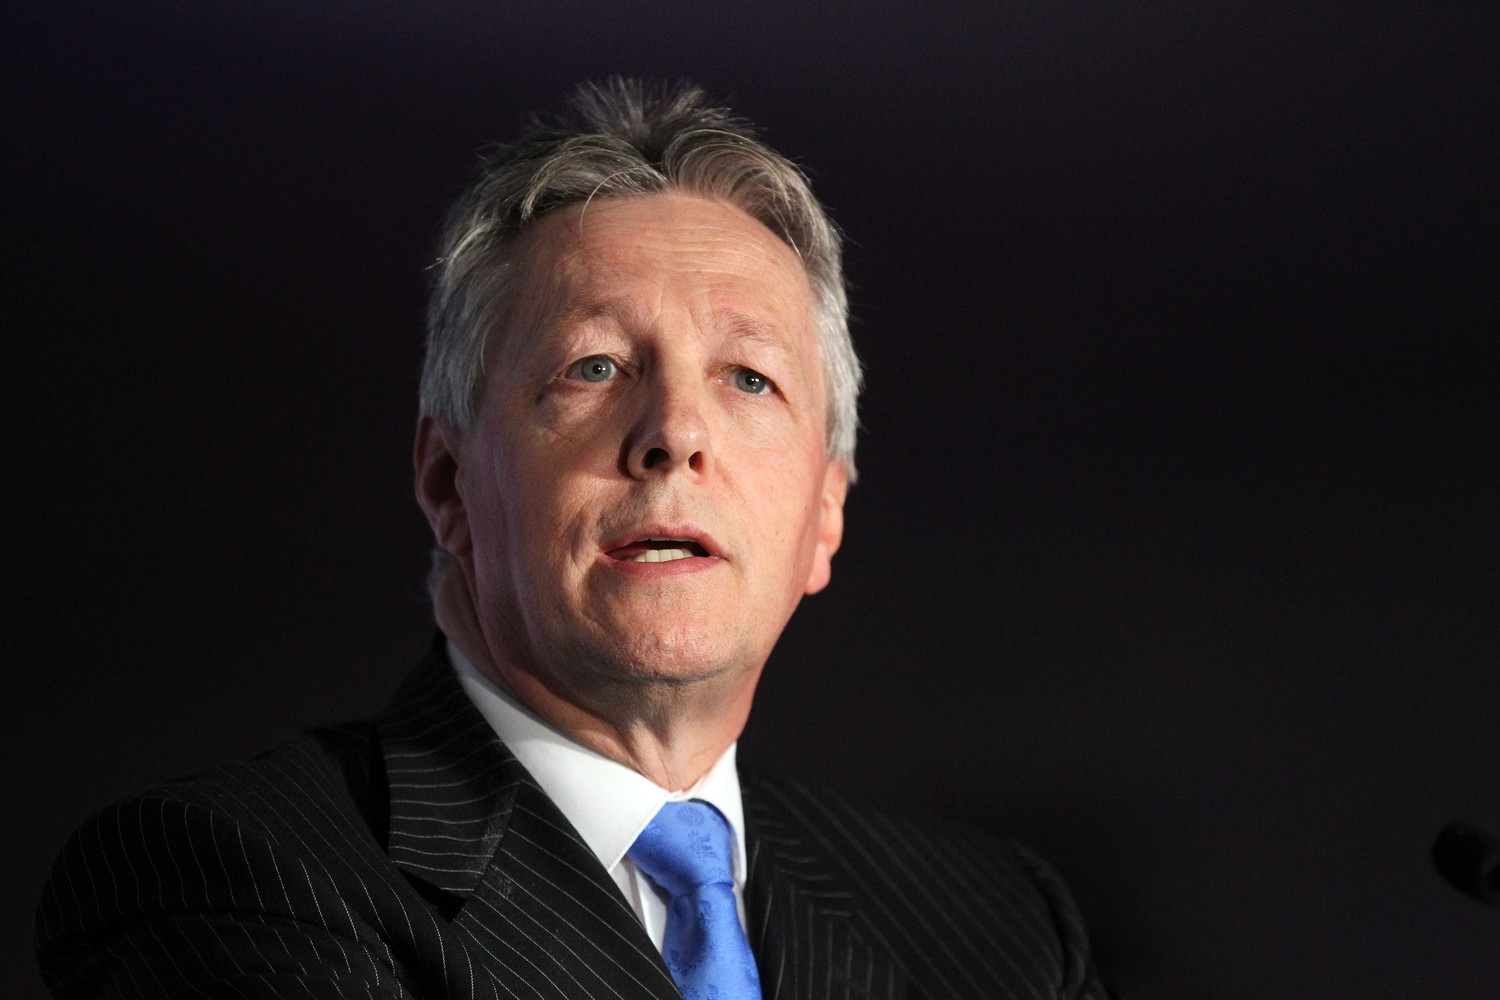 Signs good for Peter Robinson?